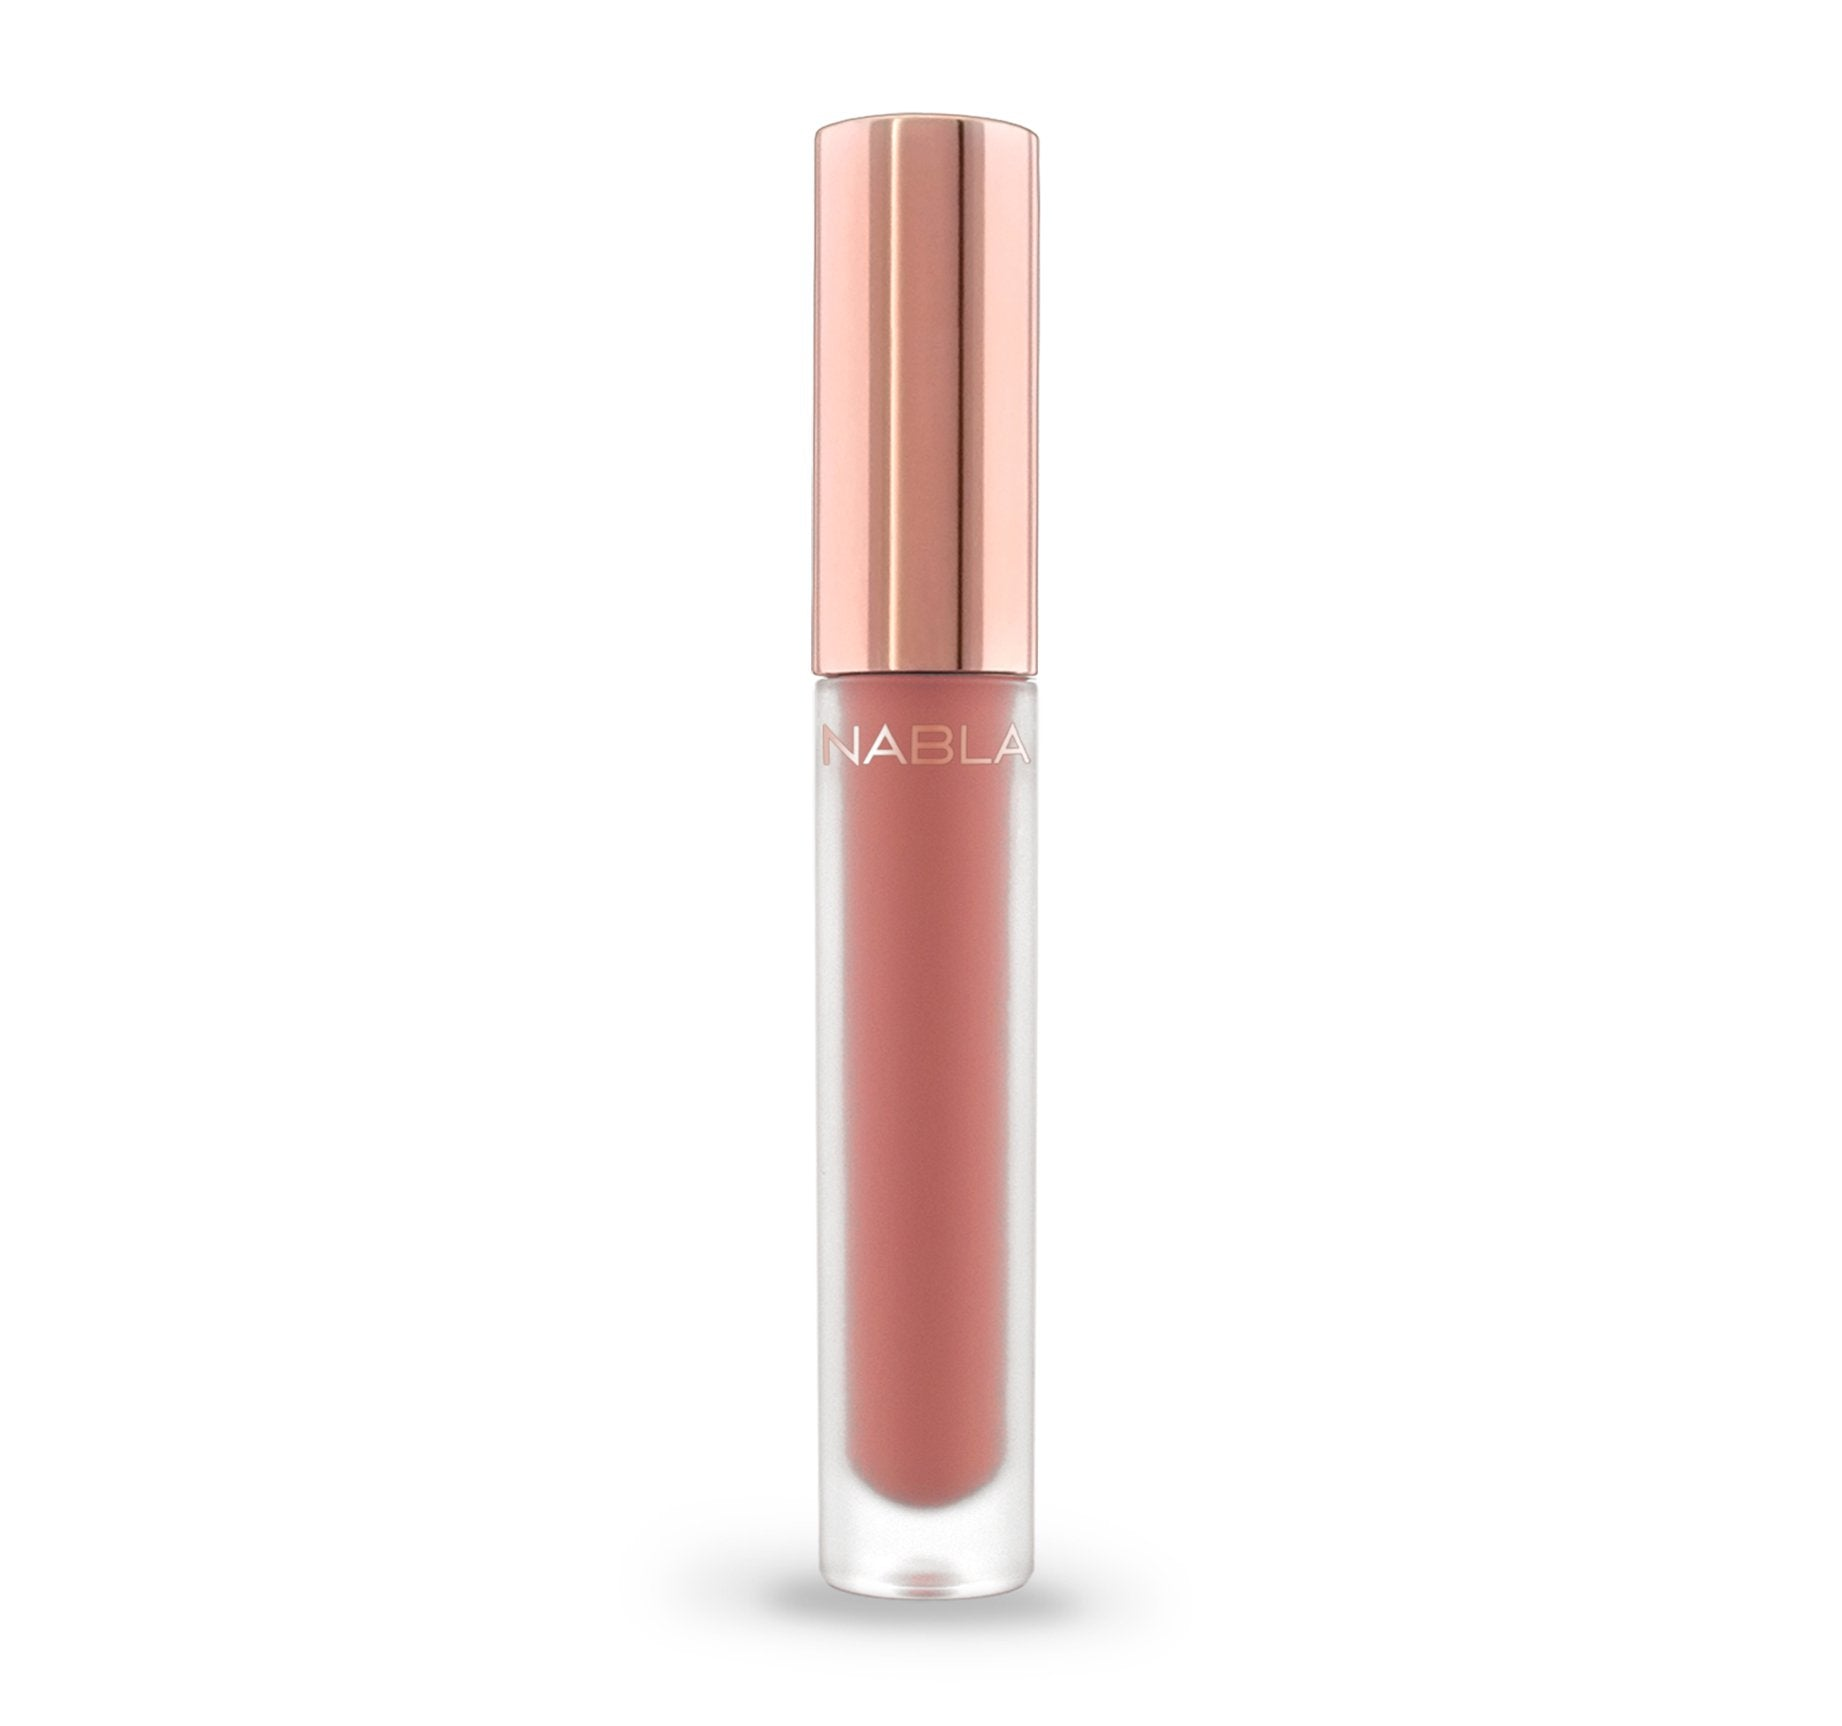 DREAMY MATTE LIQUID LIPSTICK - CLOSER, view larger image